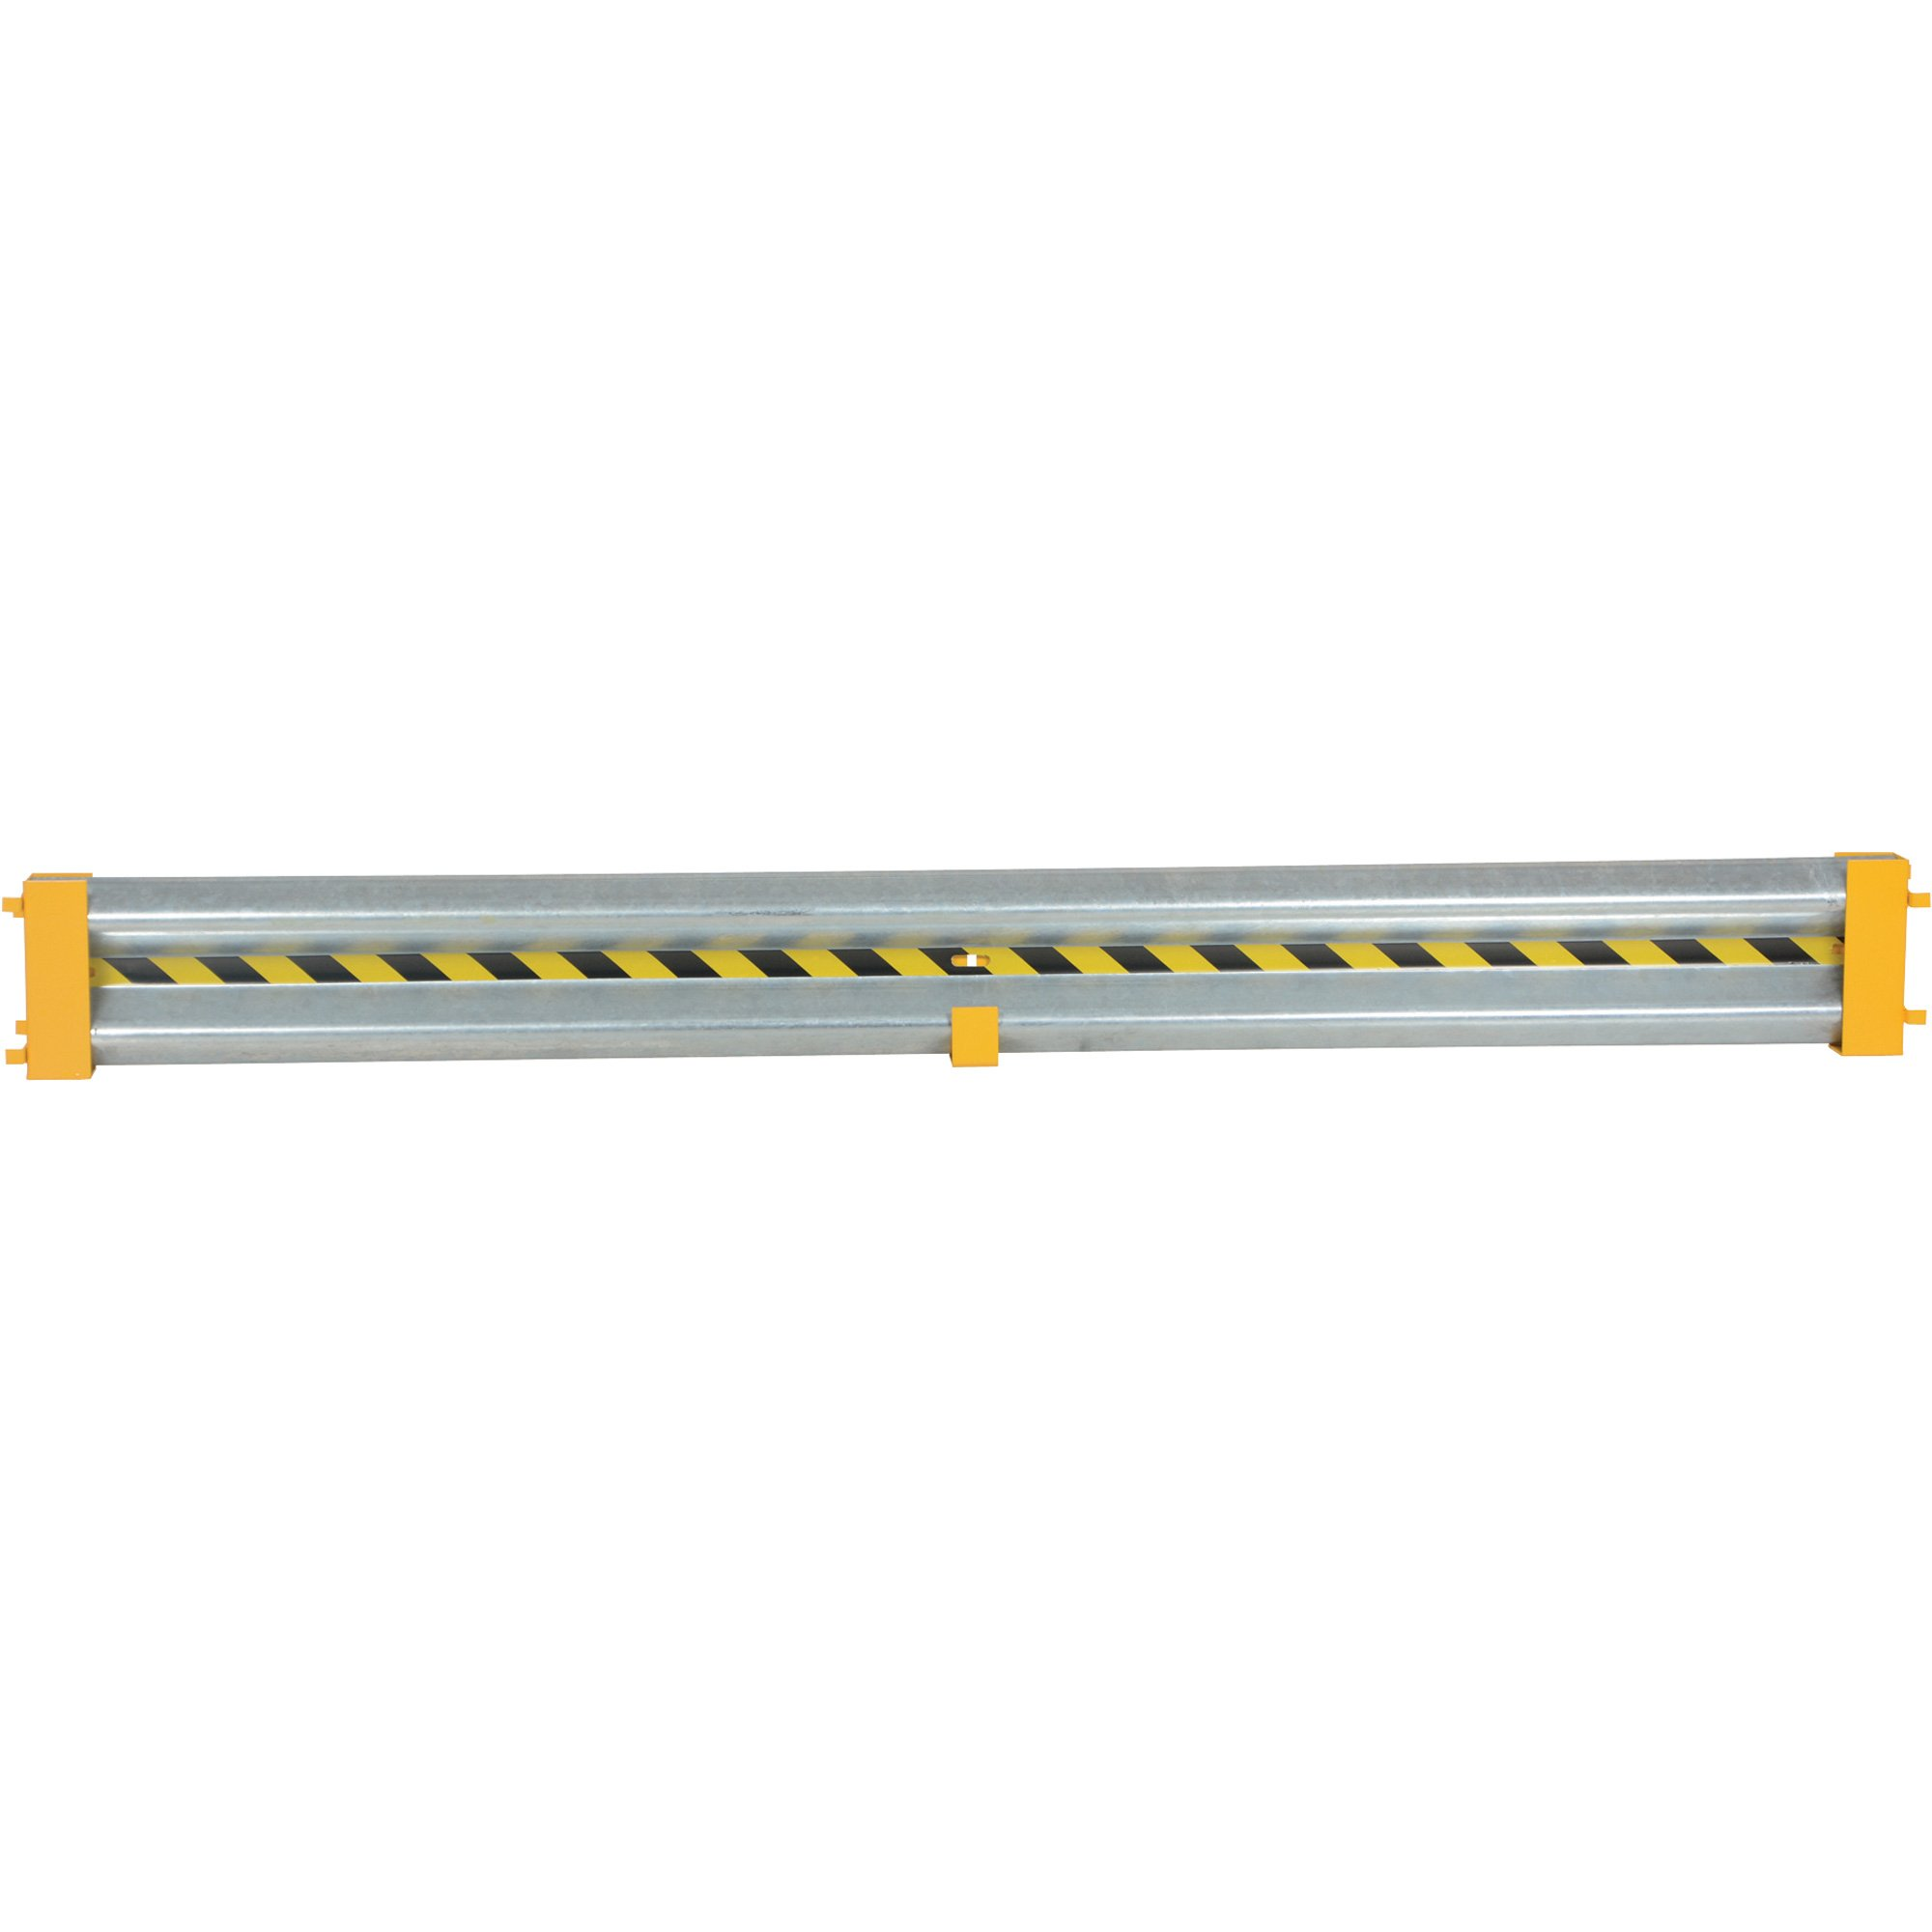 Vestil GR-D-10 Galvanized Guard Rail with Drop-In Brackets and Hardware, 120'' Length, 12'' Height